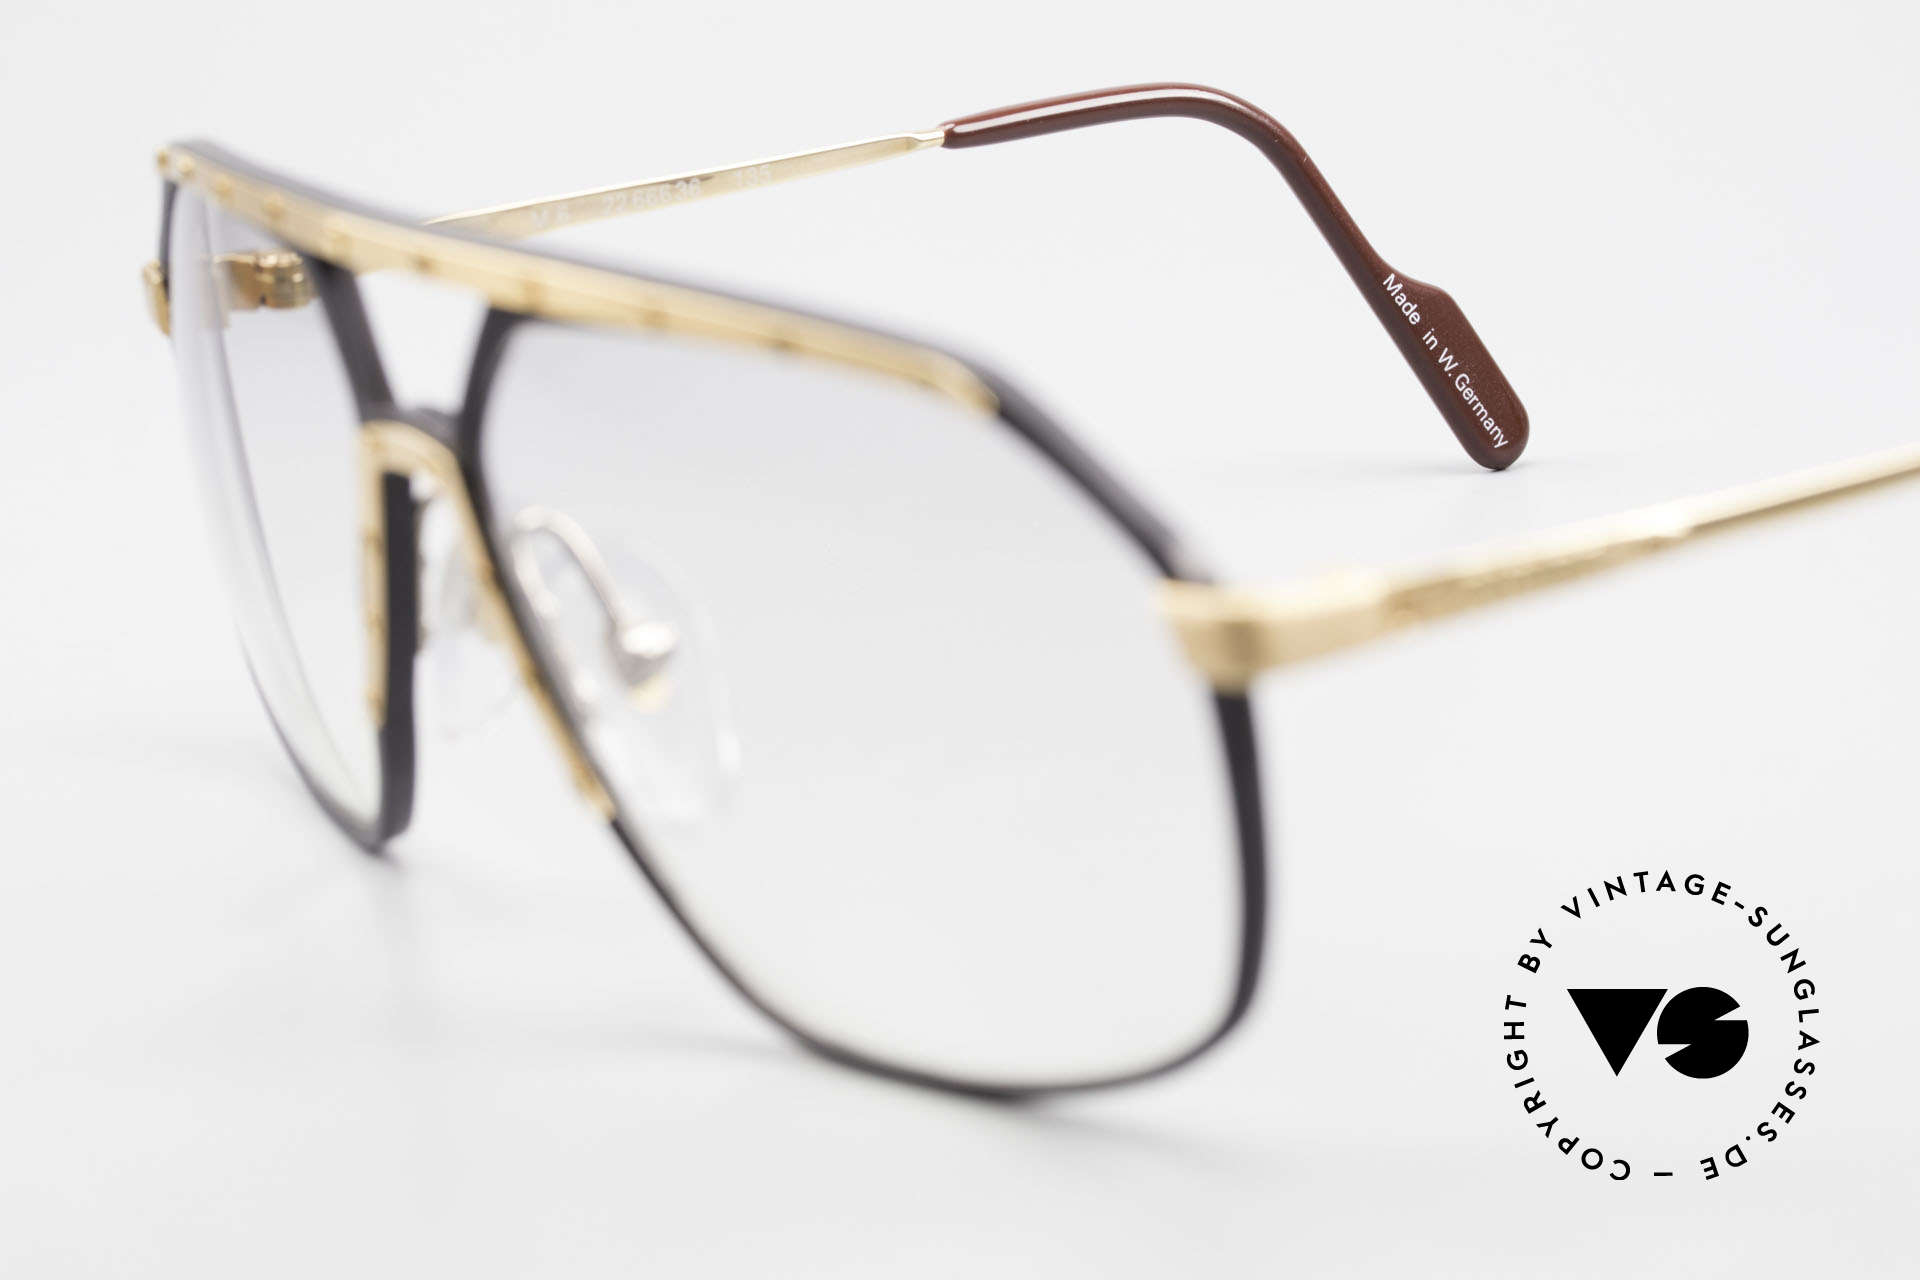 Alpina M6 80's Glasses Light Tinted Lens, one of the most wanted vintage models, worldwide, Made for Men